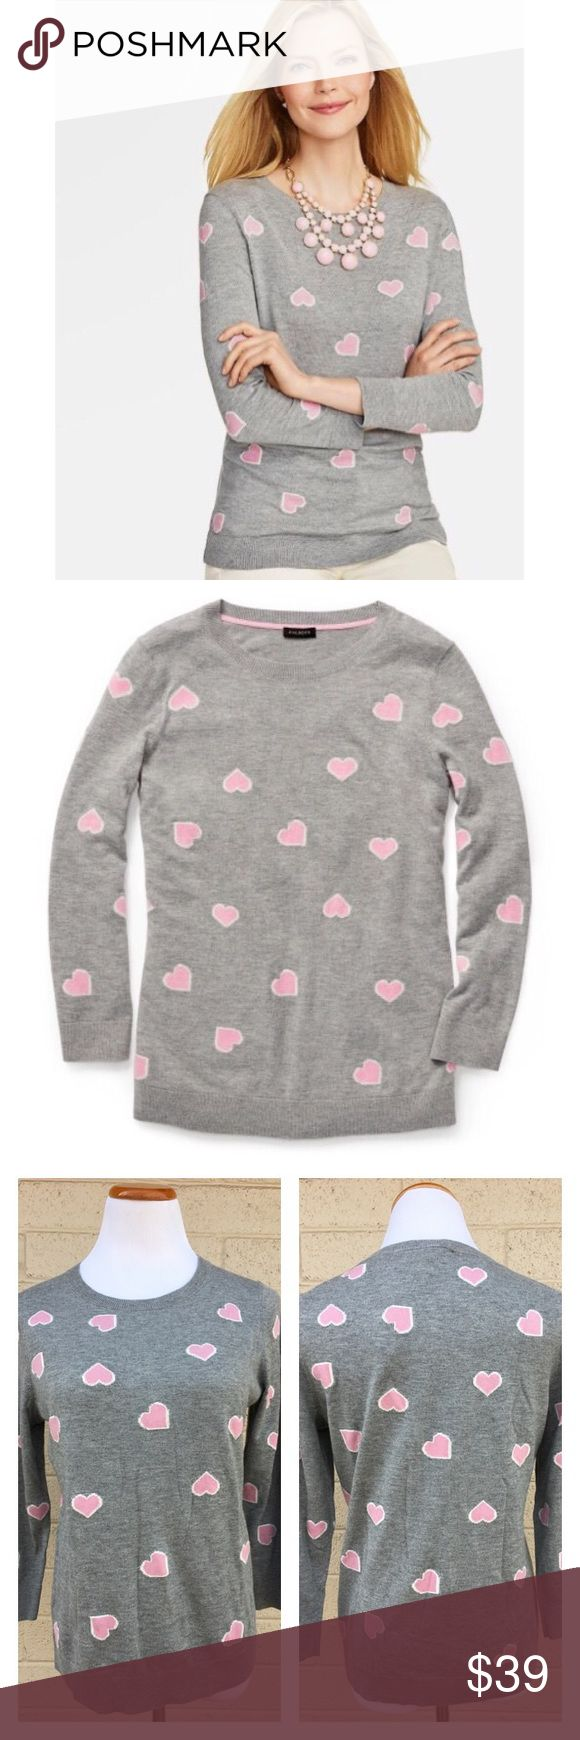 """NWT Talbots Heart Sweater Limited Edition Brand New with tags Talbots gray heart sweater in support of the National Breast Cancer Foundation!  🎀Features🎀 Round neck • 3/4 sleeves • Soft, light material.  -Underarm to underarm: 19.5""""  Length: 24.5""""  Shoulder to sleeve cuff: 19"""" Talbots Sweaters Crew & Scoop Necks"""